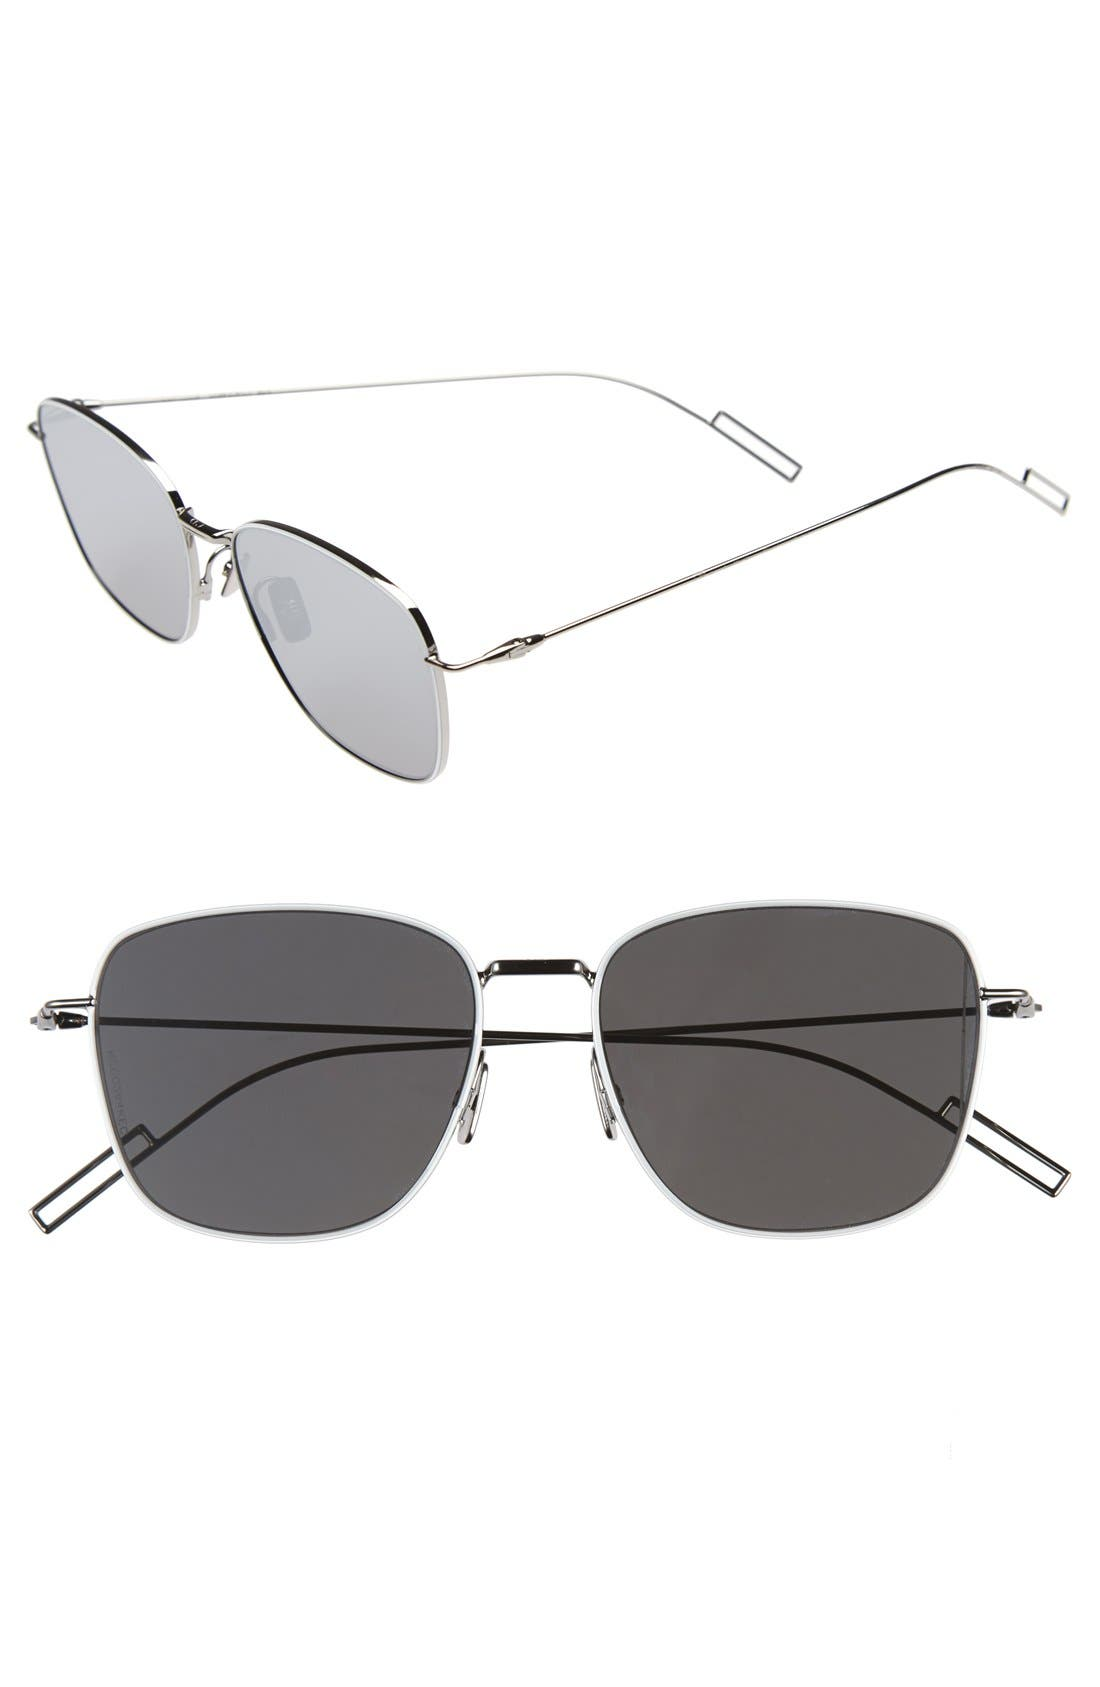 Dior Homme 'Composit 1.1S' 54mm Metal Sunglasses